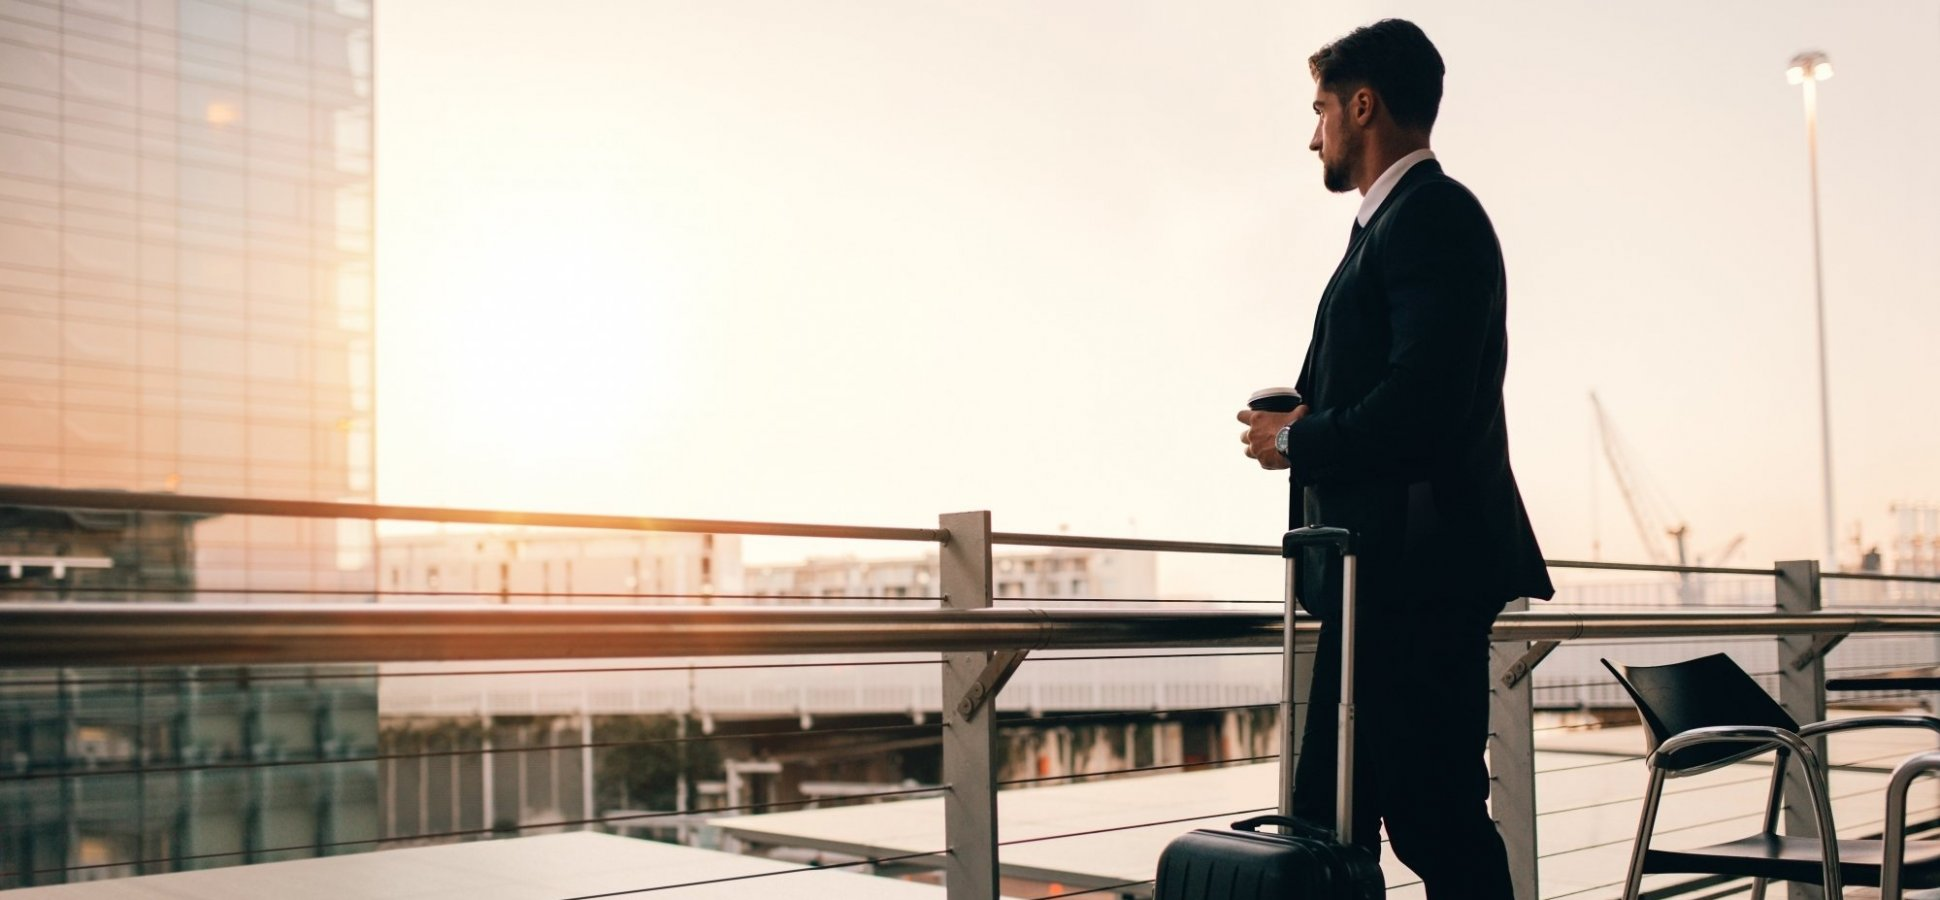 Business Travel is Expected to Grow to Over $1.7 Trillion Dollars By 2022. Here's 2 Ways to Keep Traveling Employees Happy